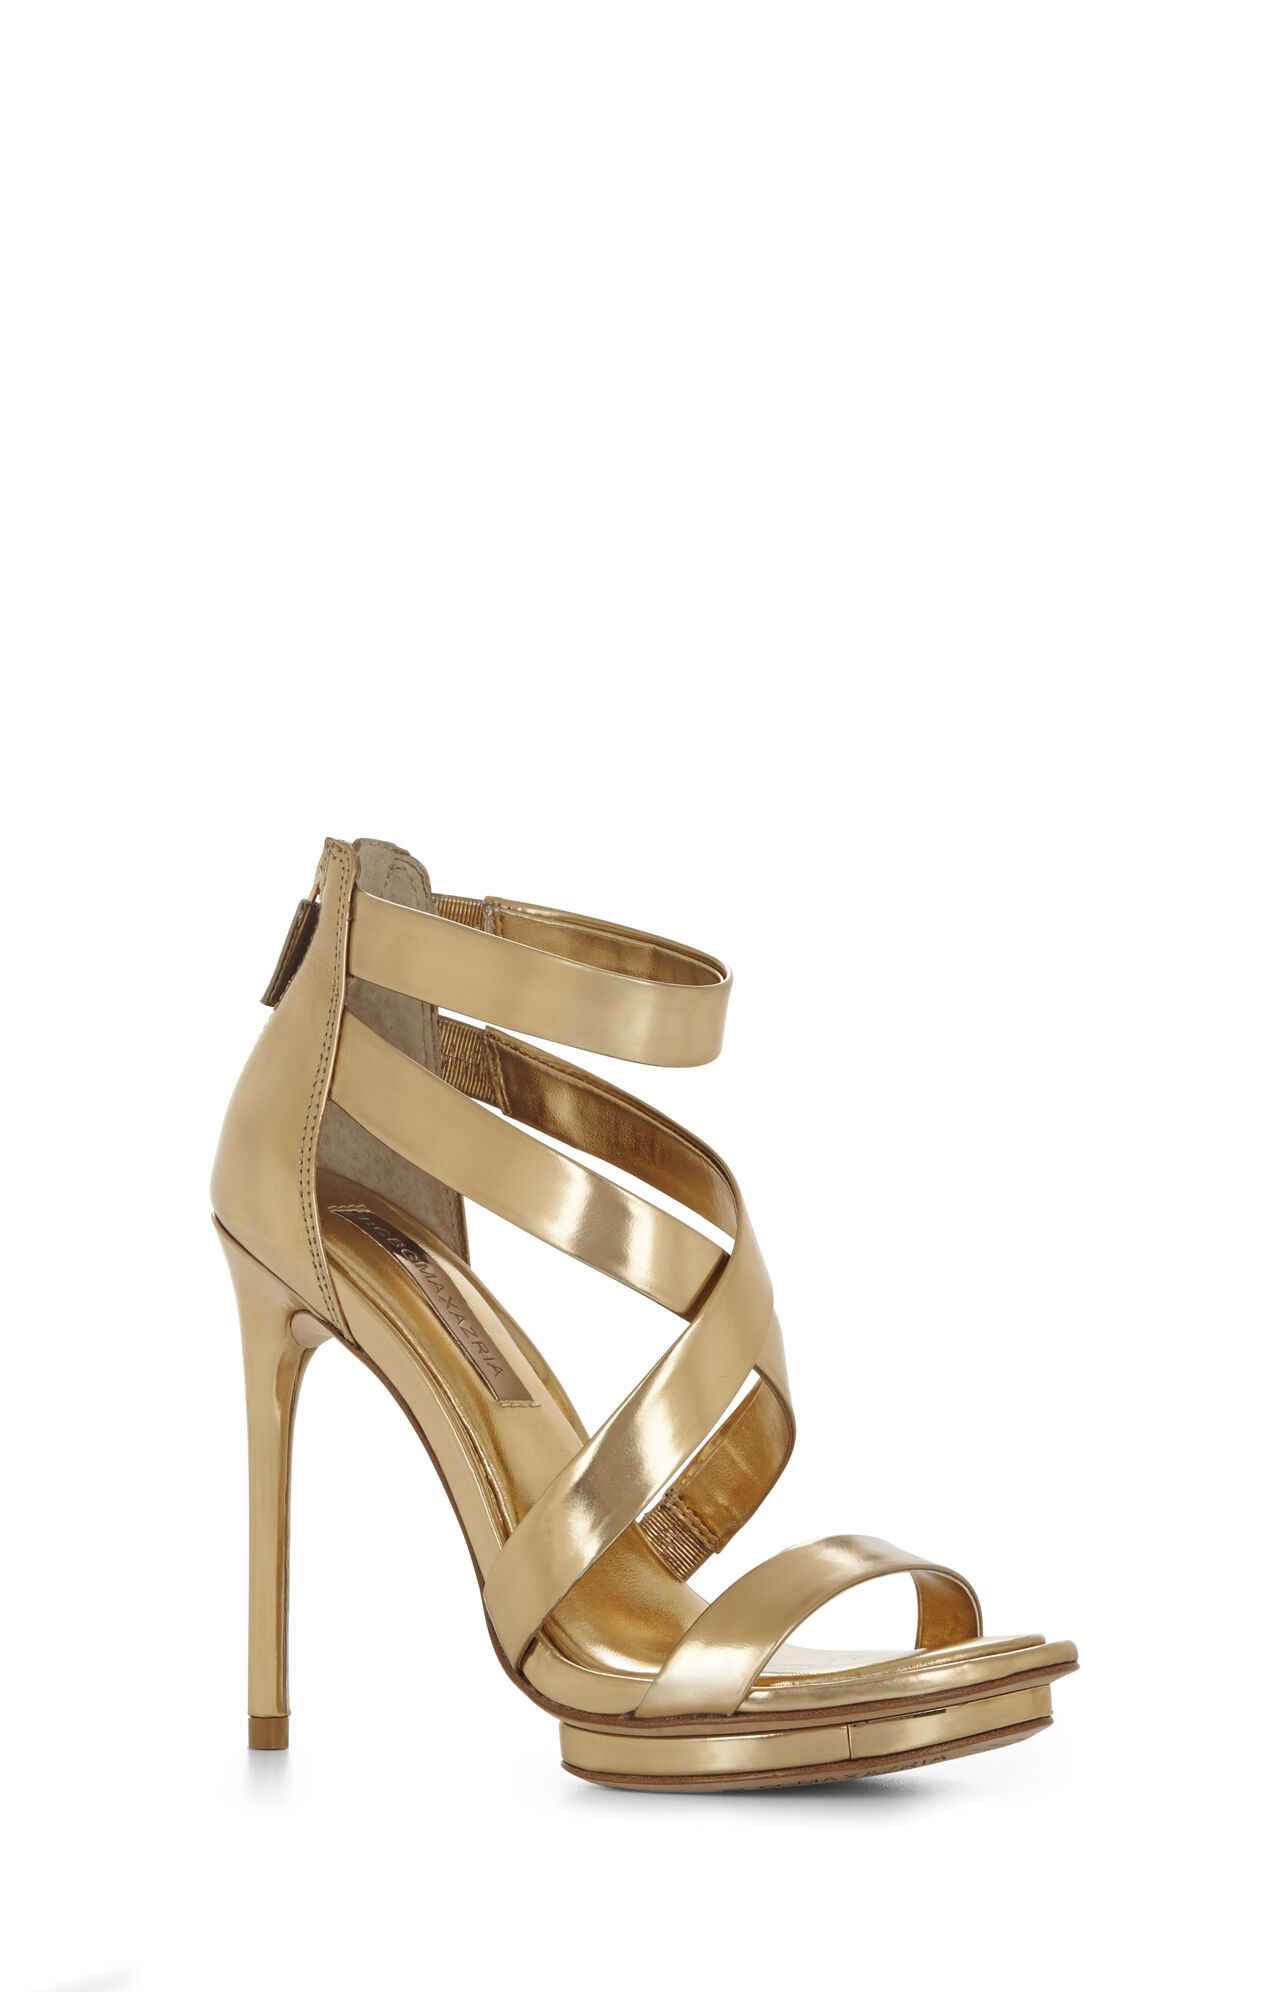 Leemour Strappy High-Heel Sandal